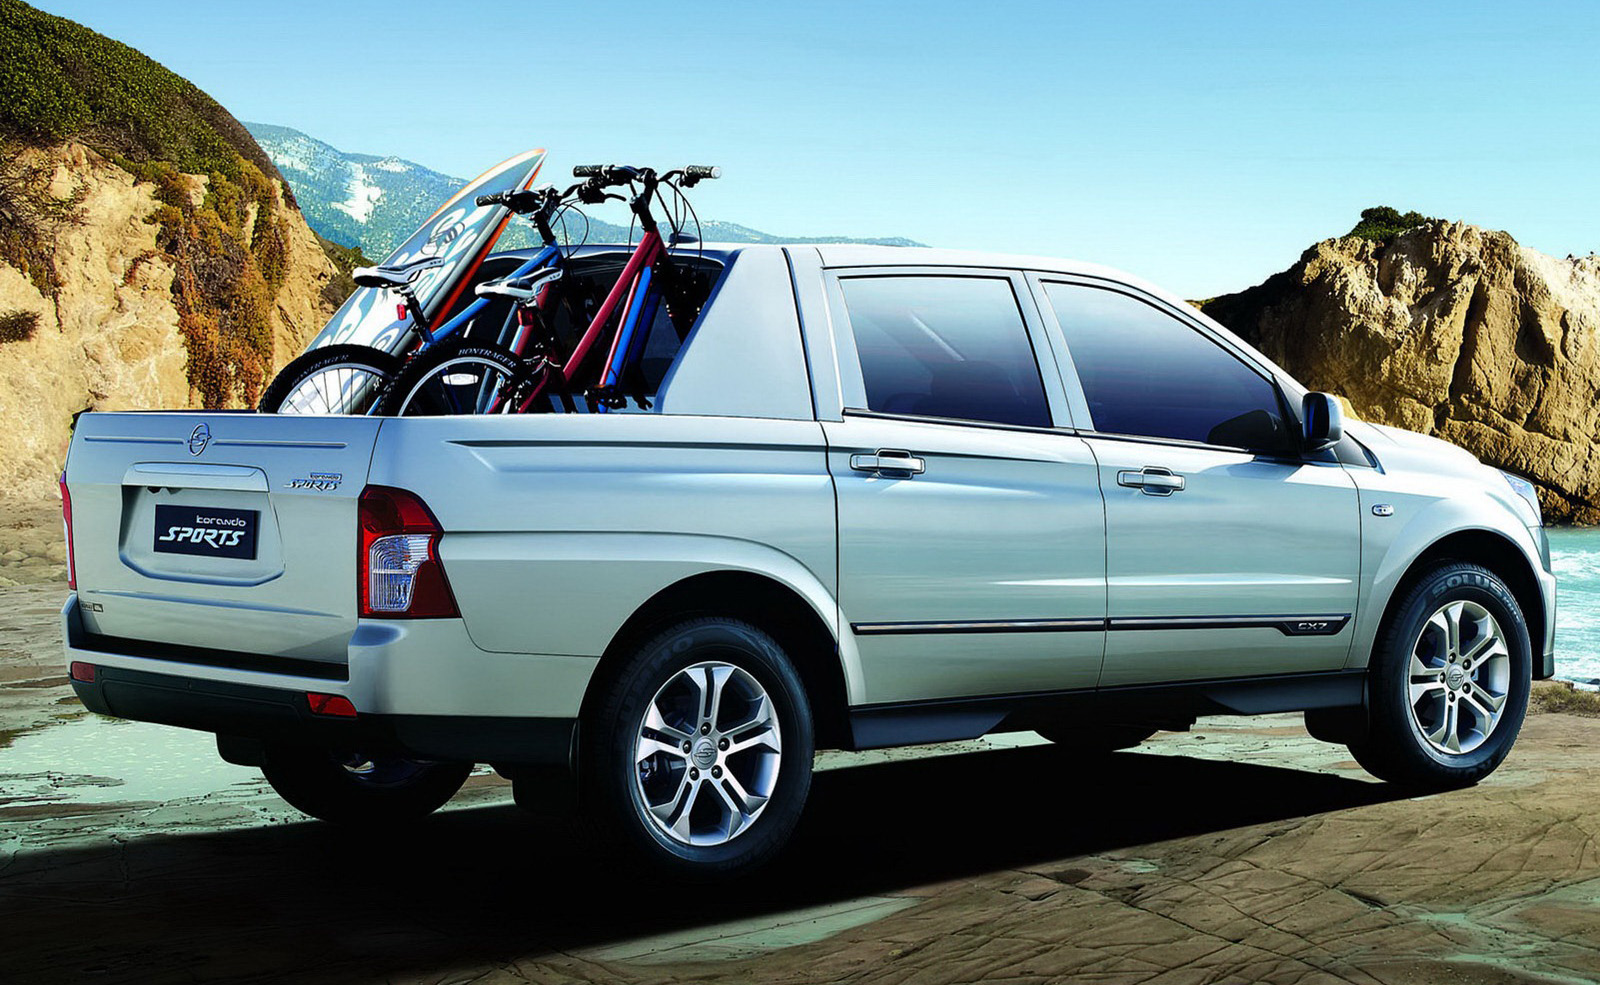 ssangyong actyon sports 2012 images